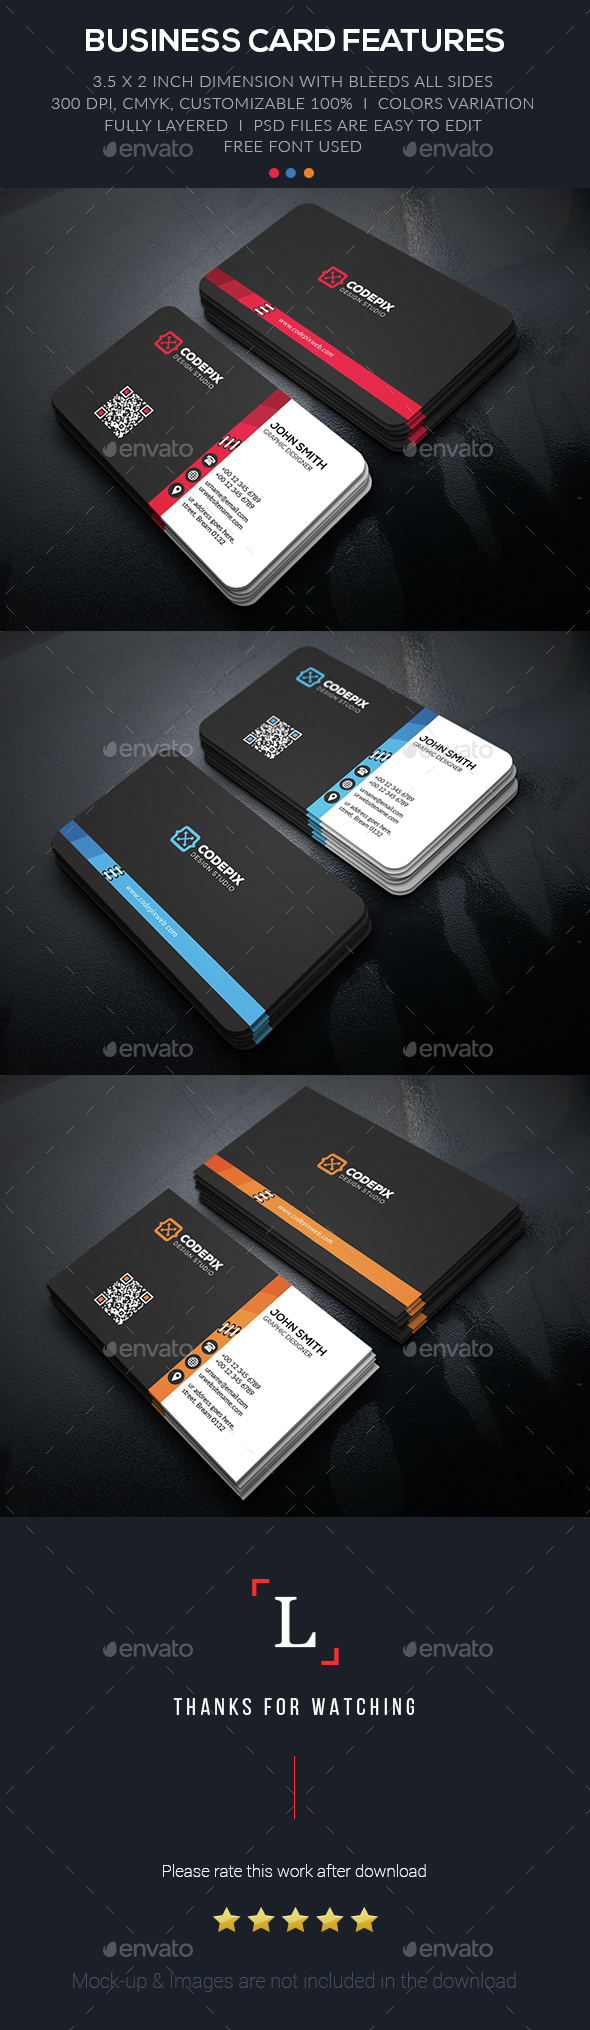 Color Link Business Card - Business Cards Print Templates